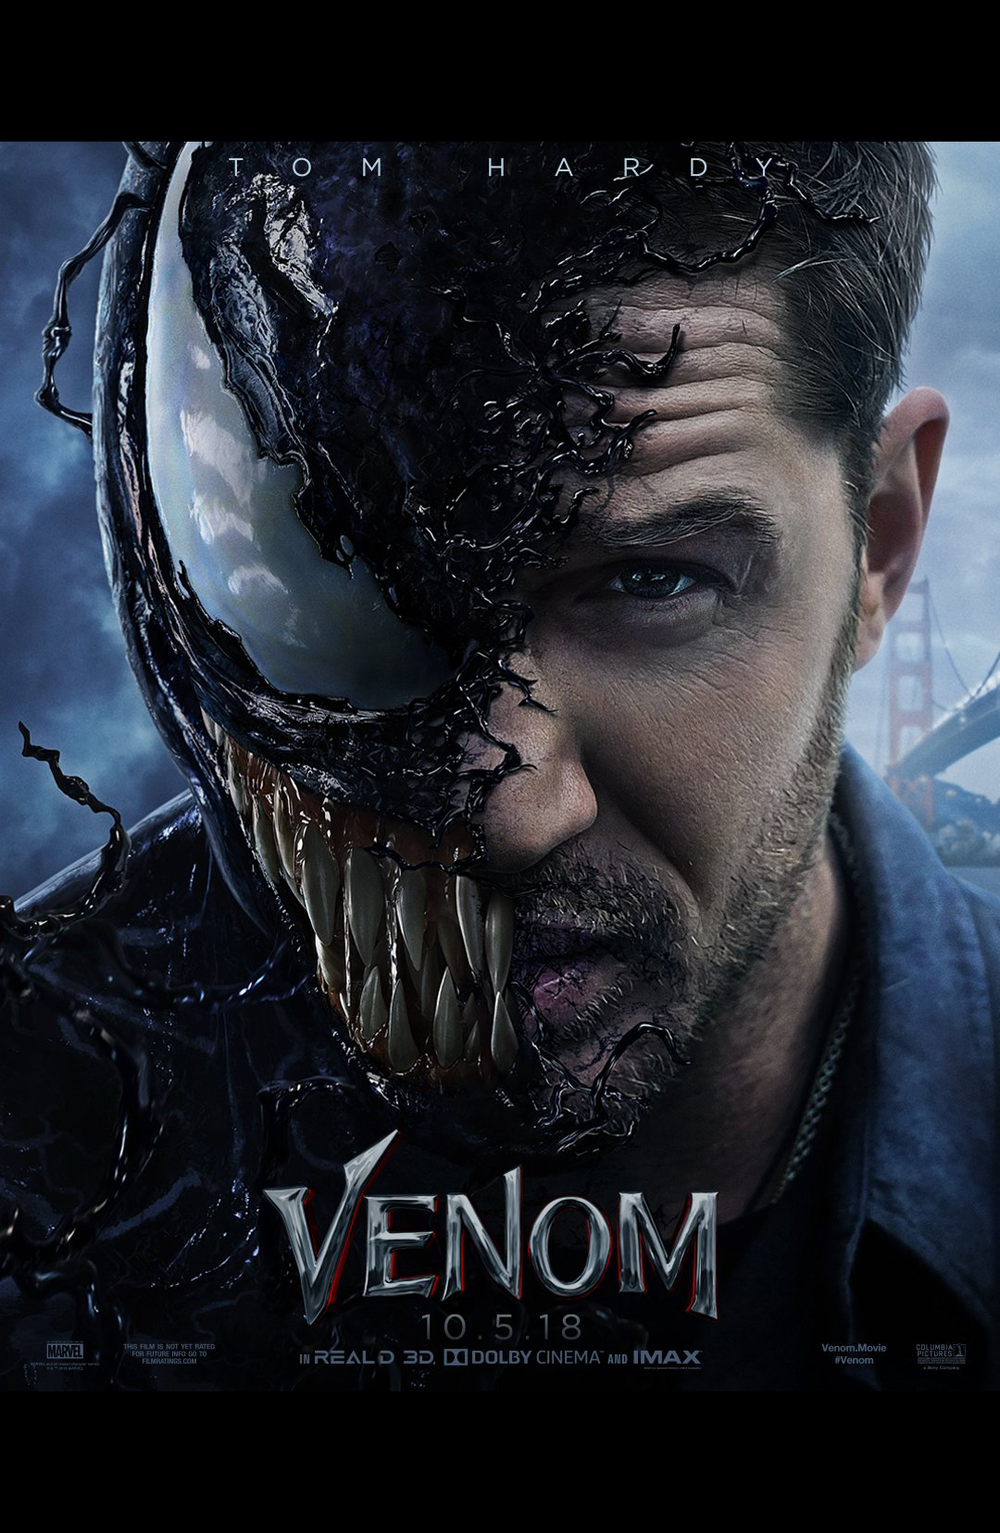 Venom (2018) - Cameras by Camtec Motion Picture Cameras